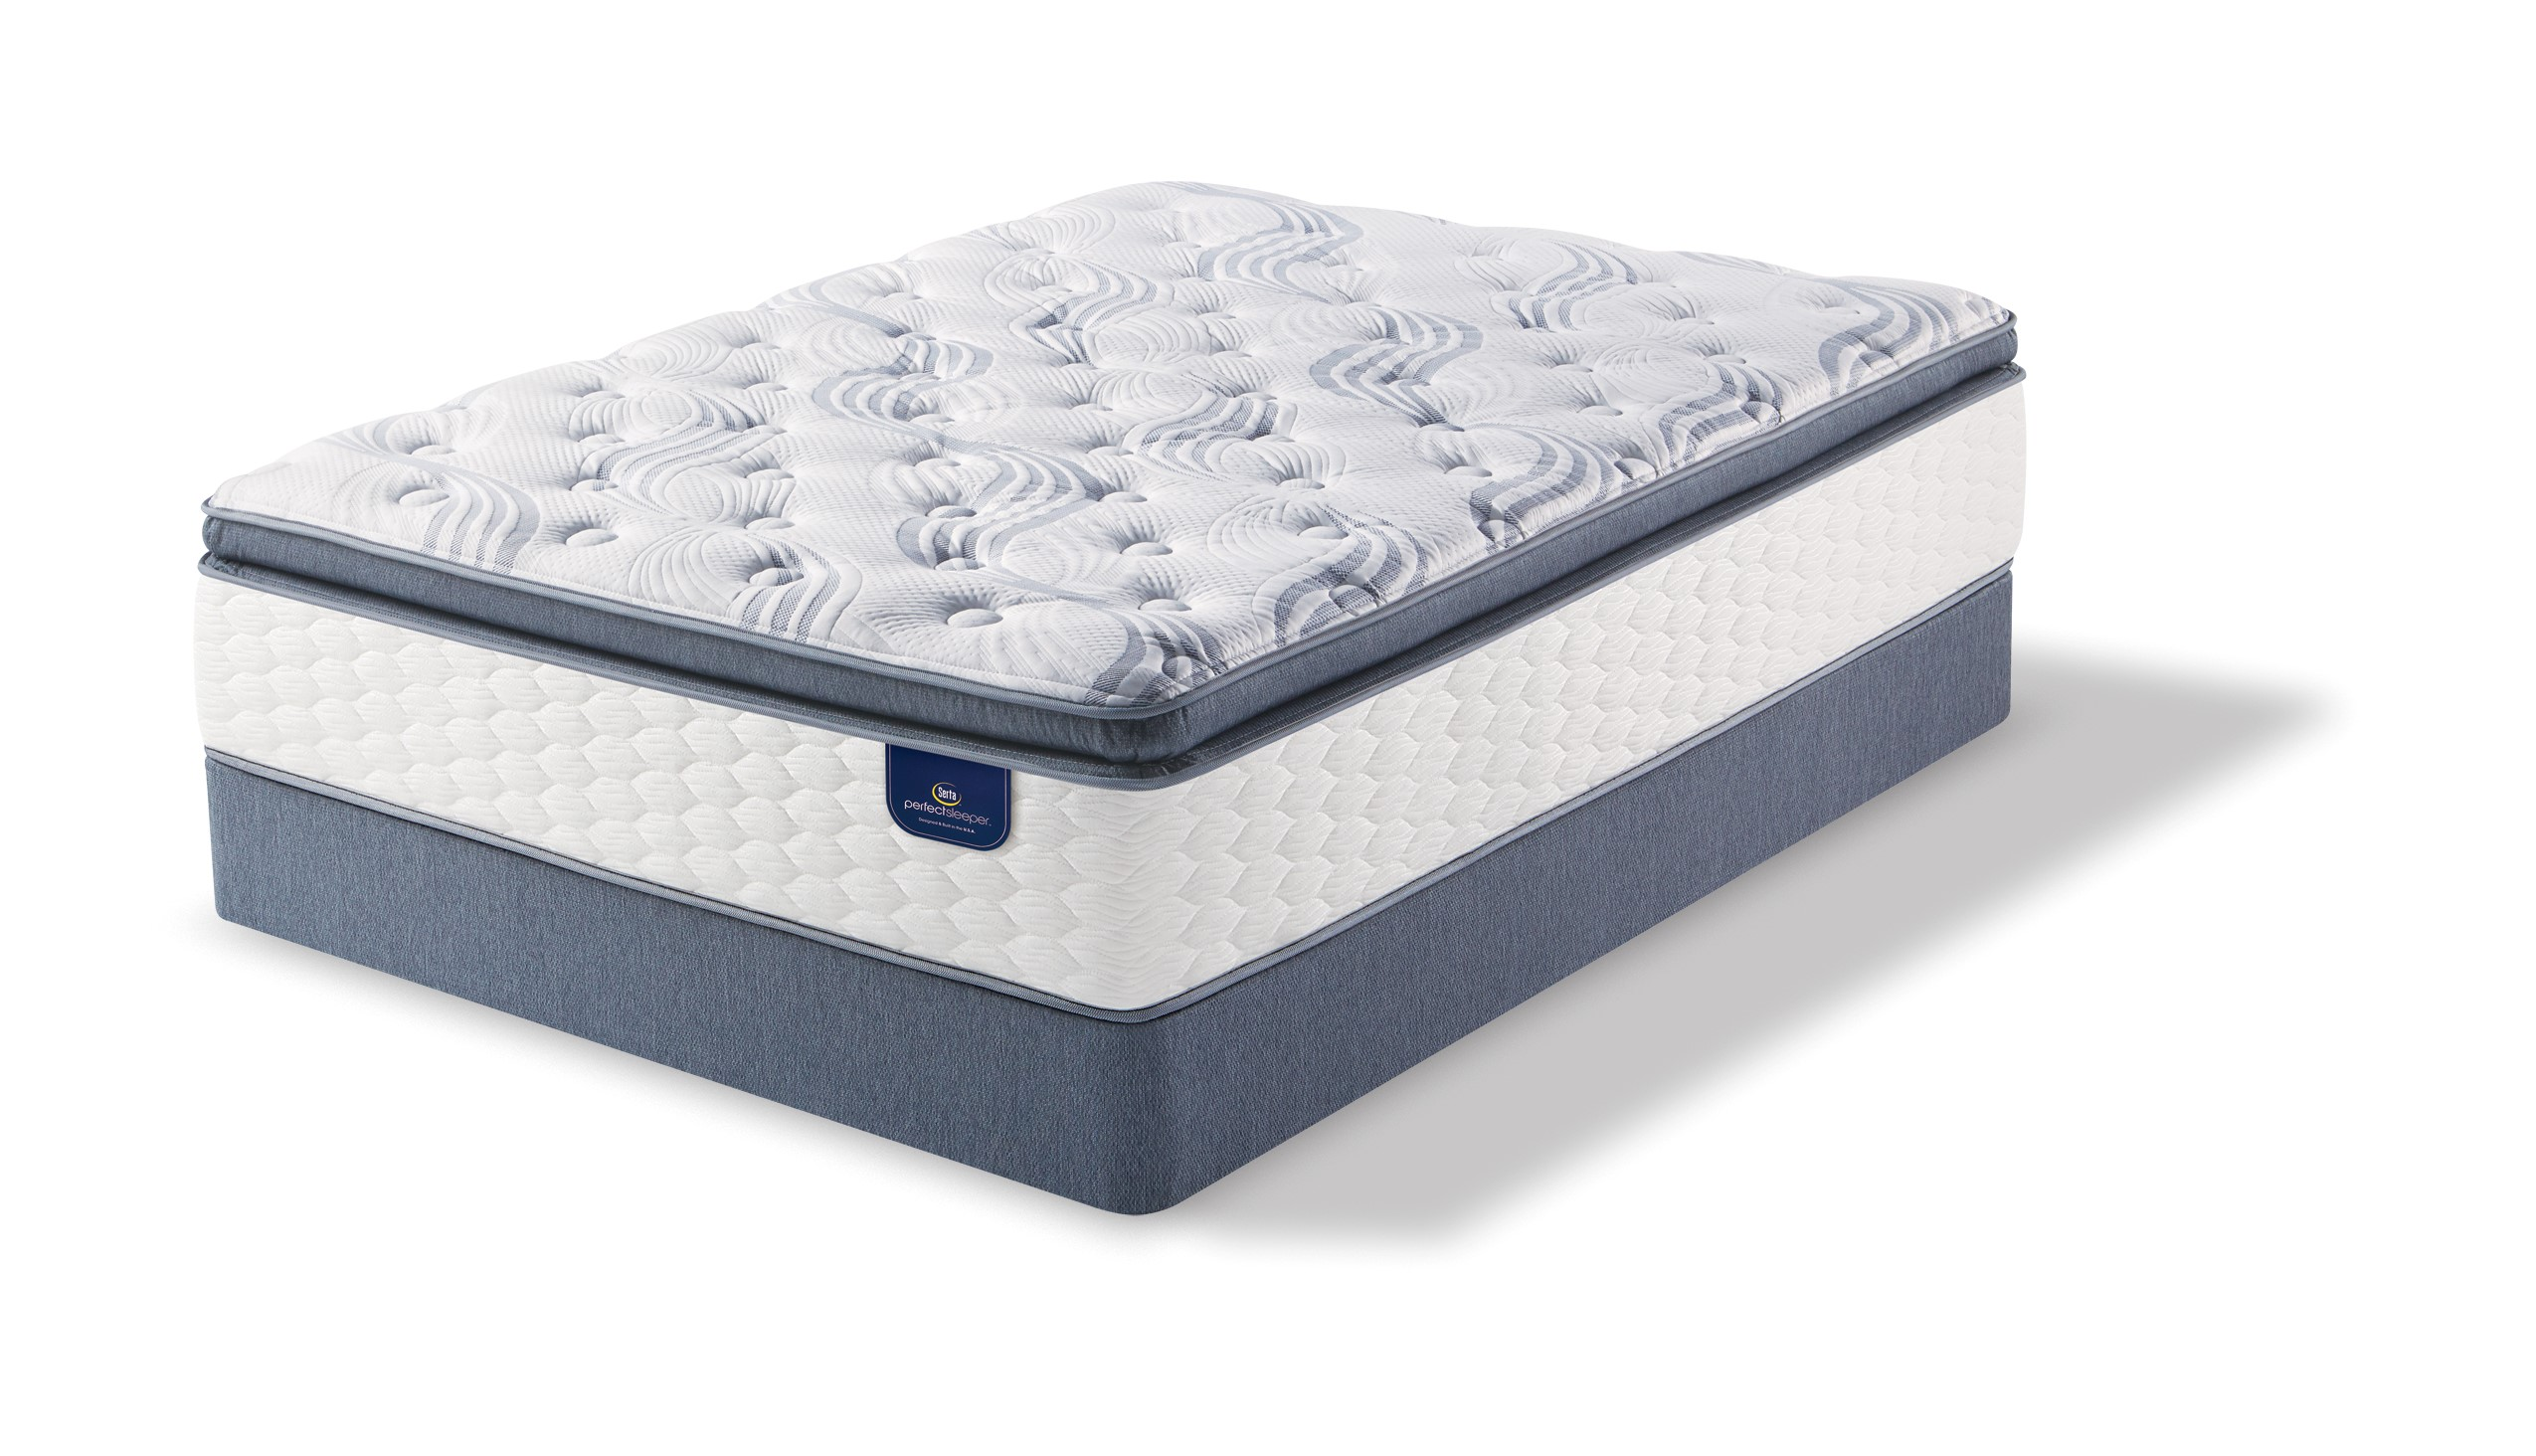 hybrid mattresses combine a steel coil support system in other words an innerspring system with one or more types of foam like memory latex or gel